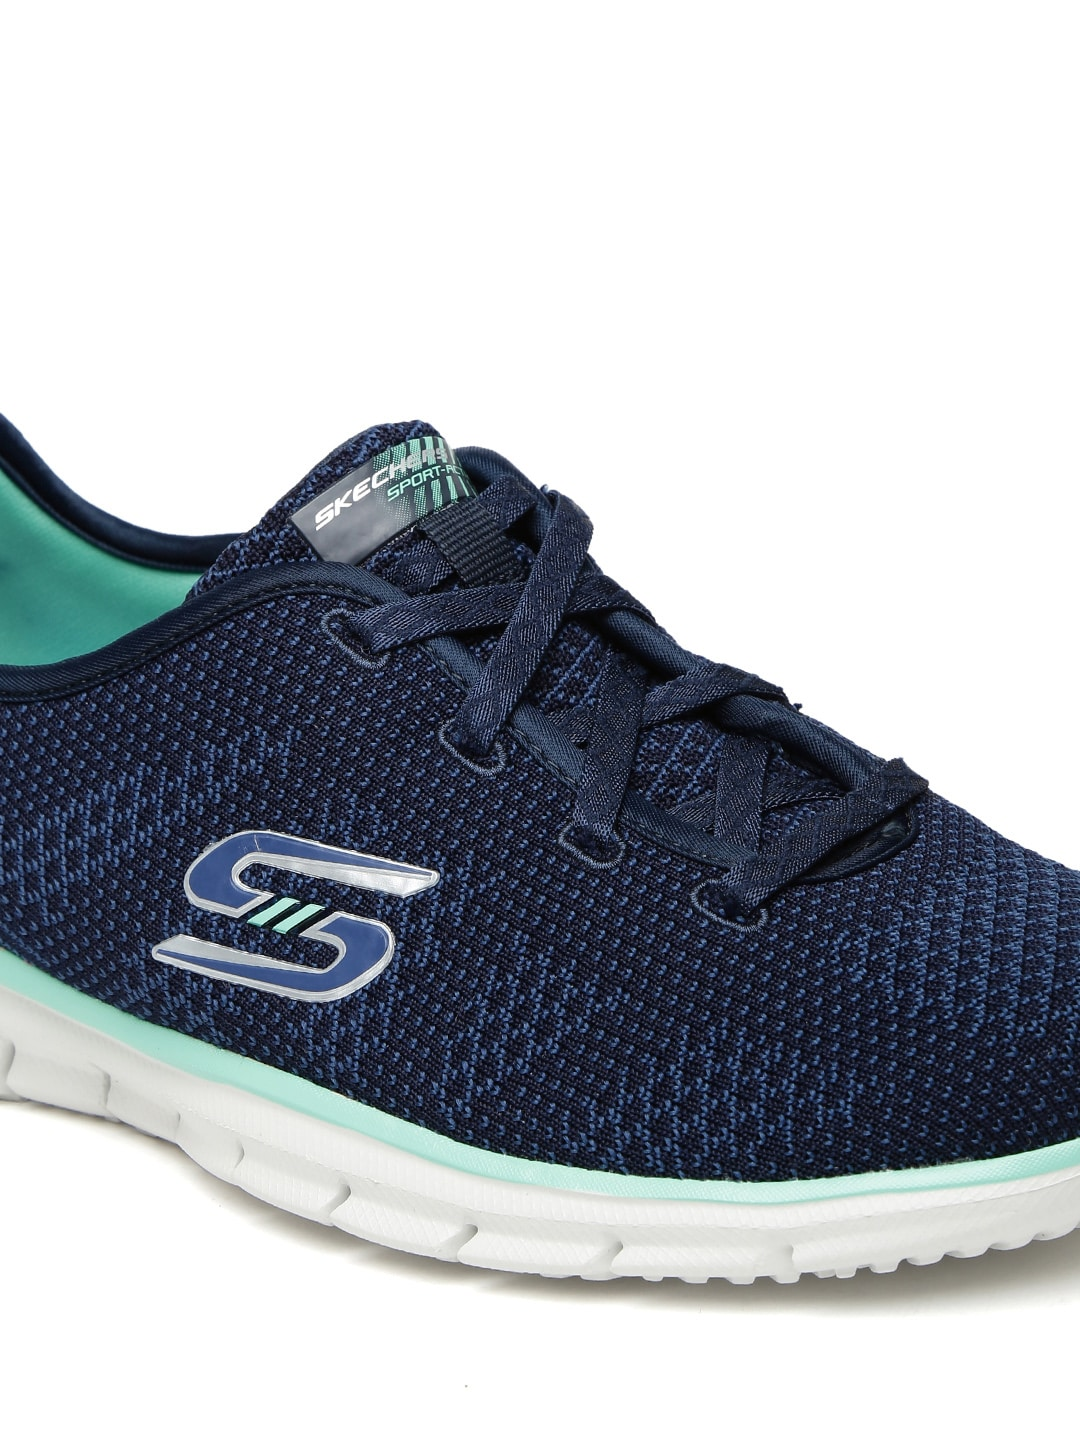 3cfcad1548 skechers slippers womens blue sale   OFF65% Discounted